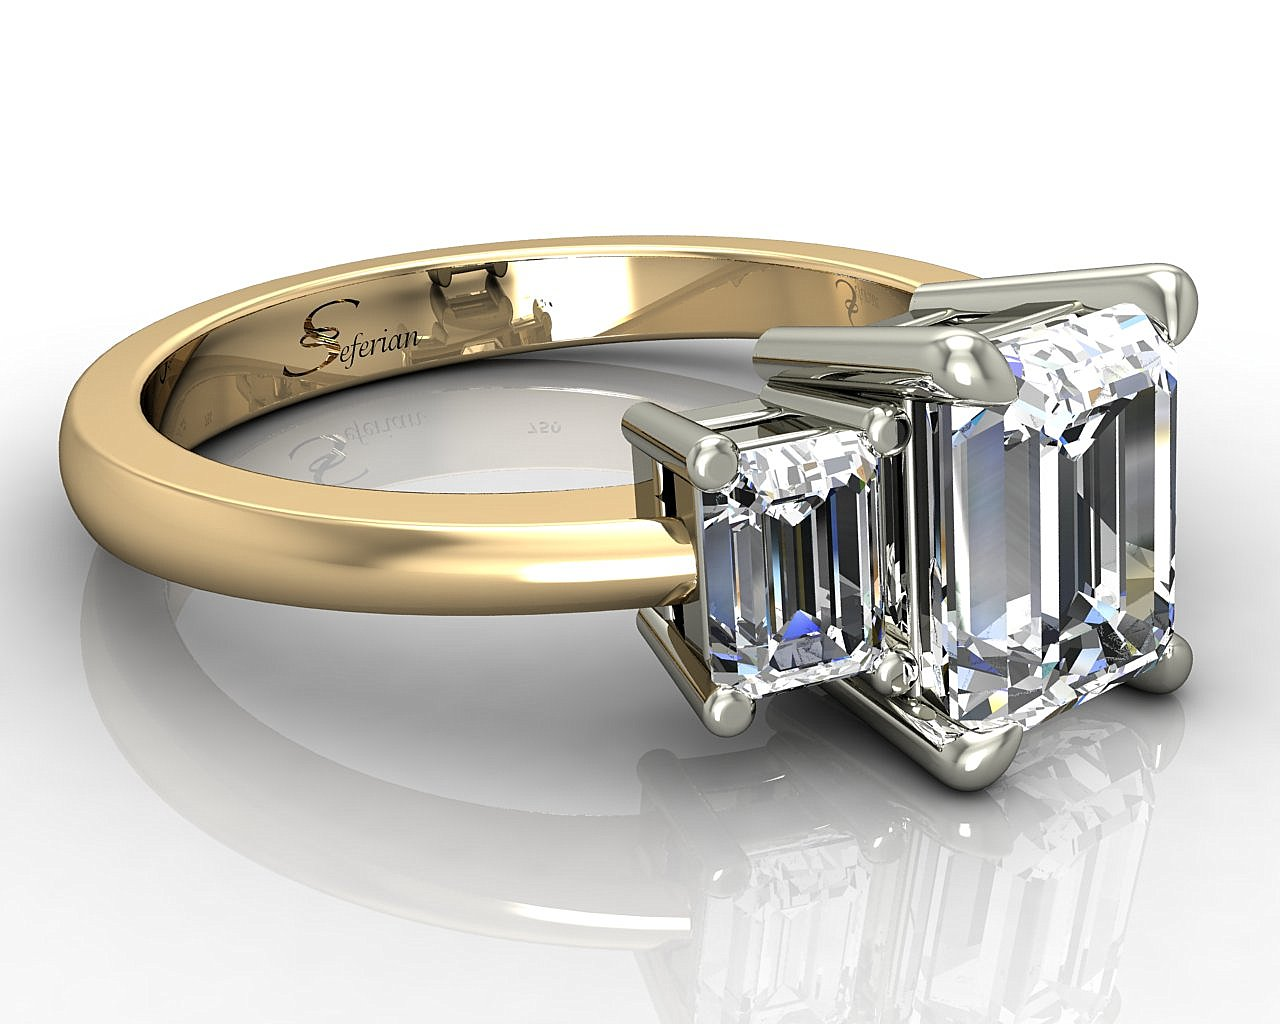 clogau wedwk builder ring compose zoom jewellery your own gold design